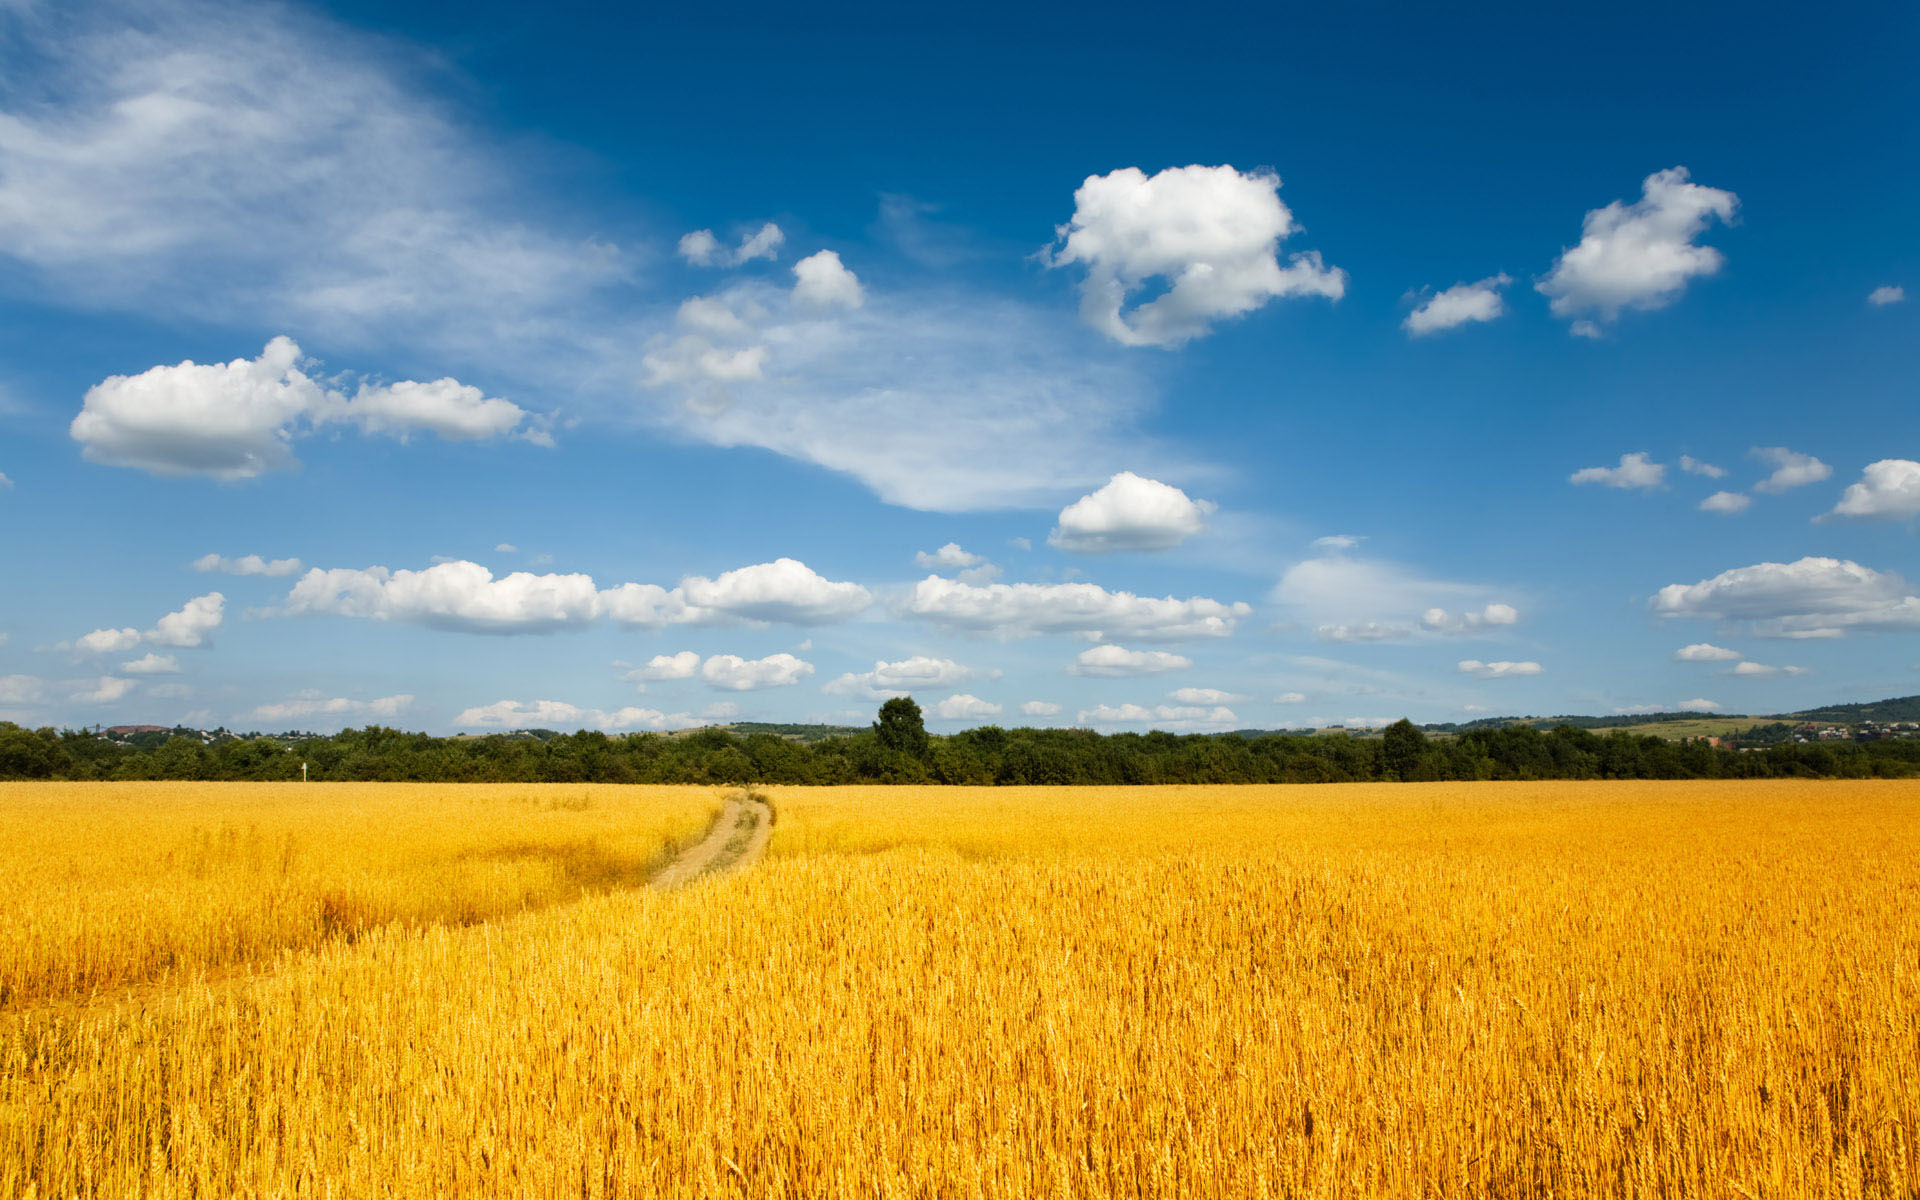 sunny-field-wallpaper-5901.jpg